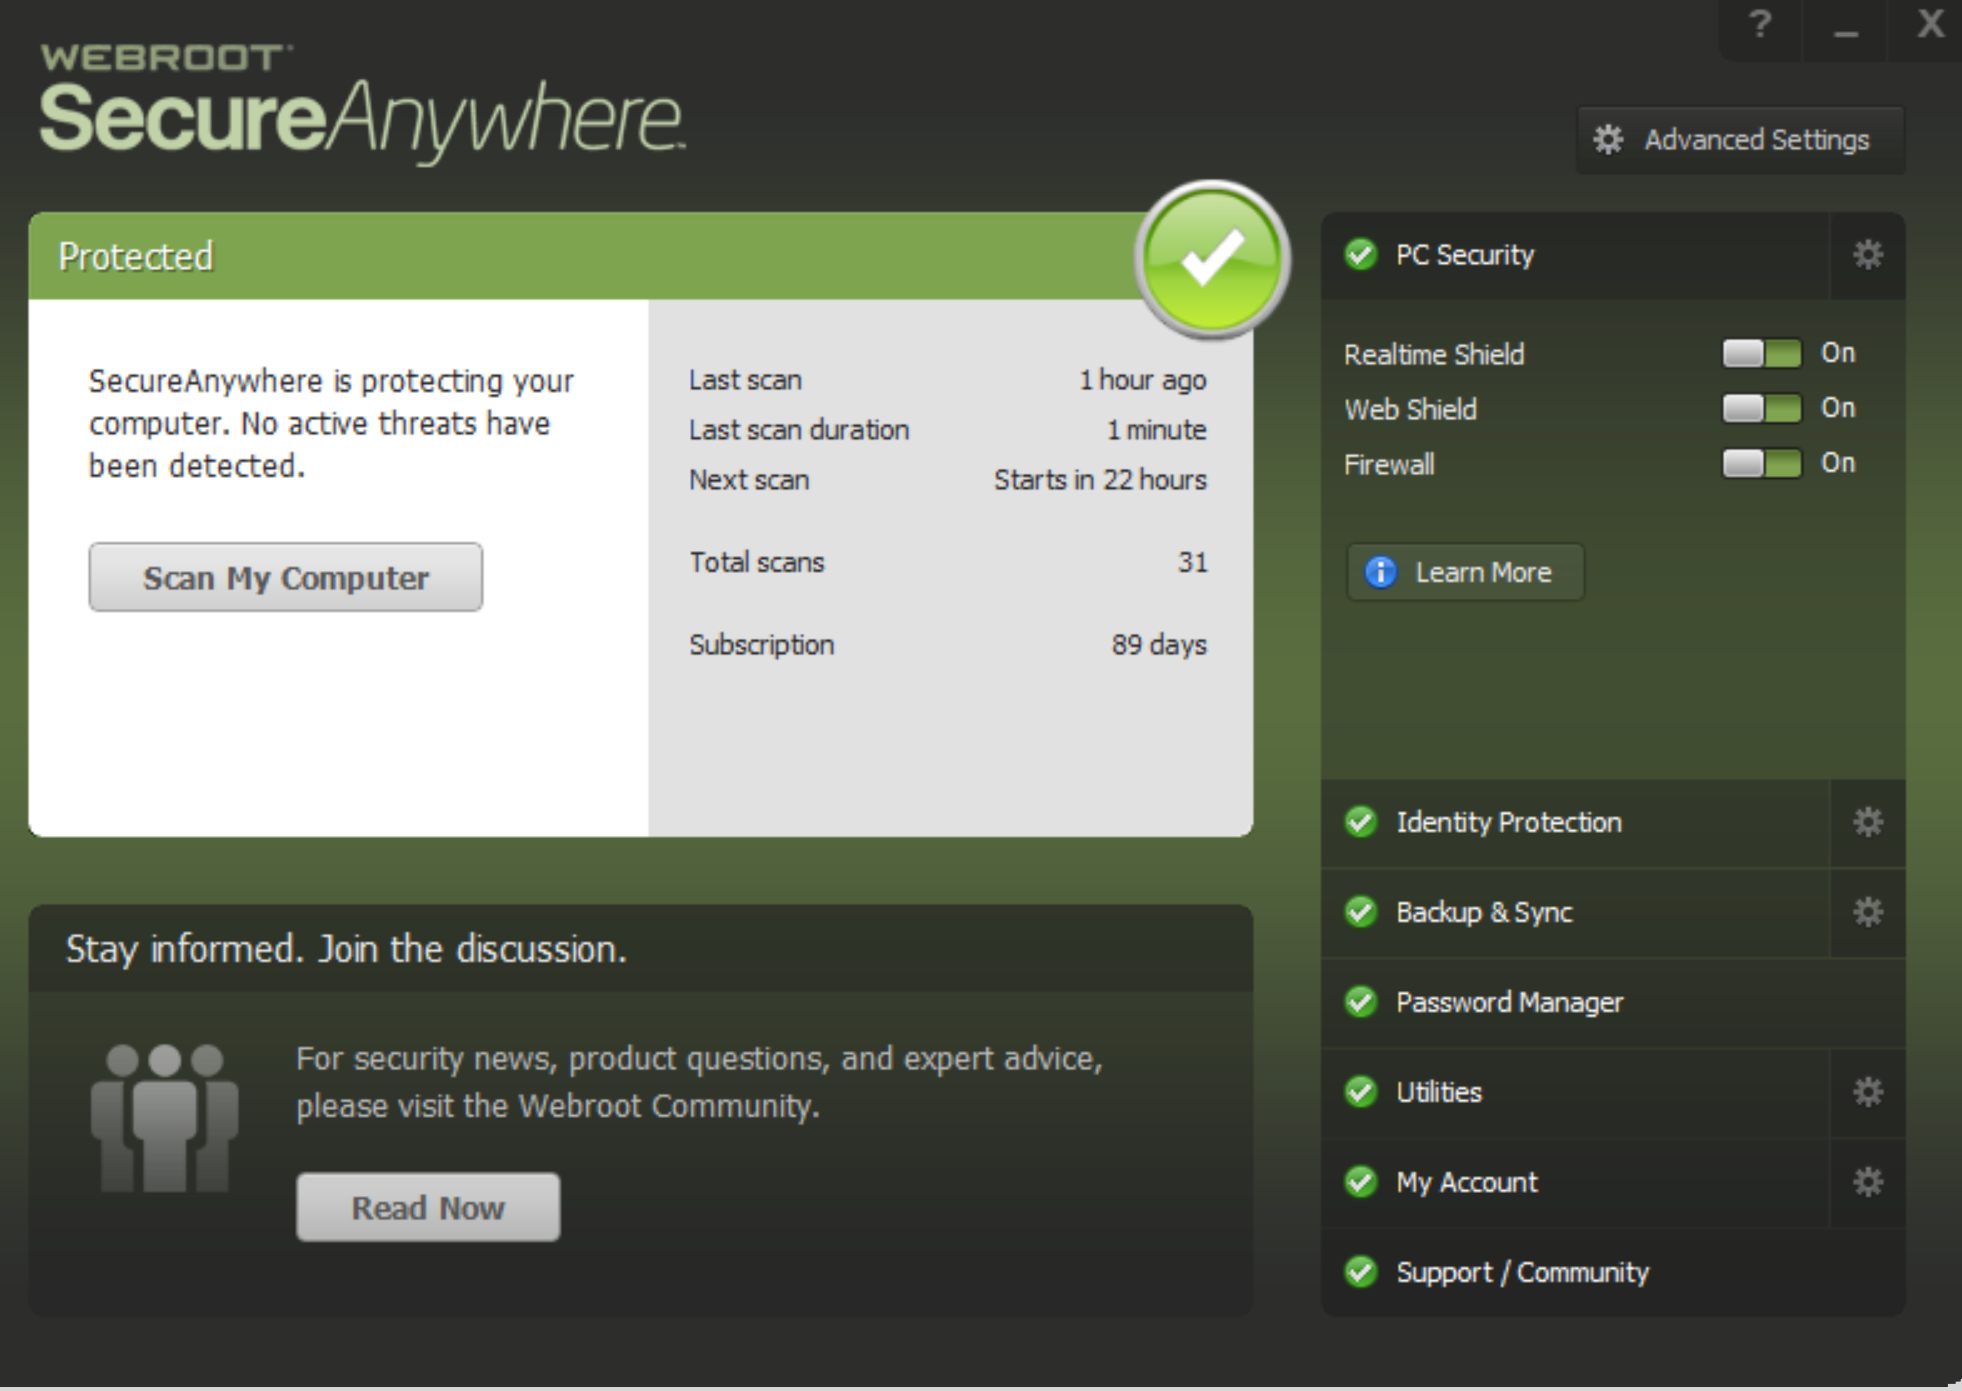 webroot managed endpoint protection